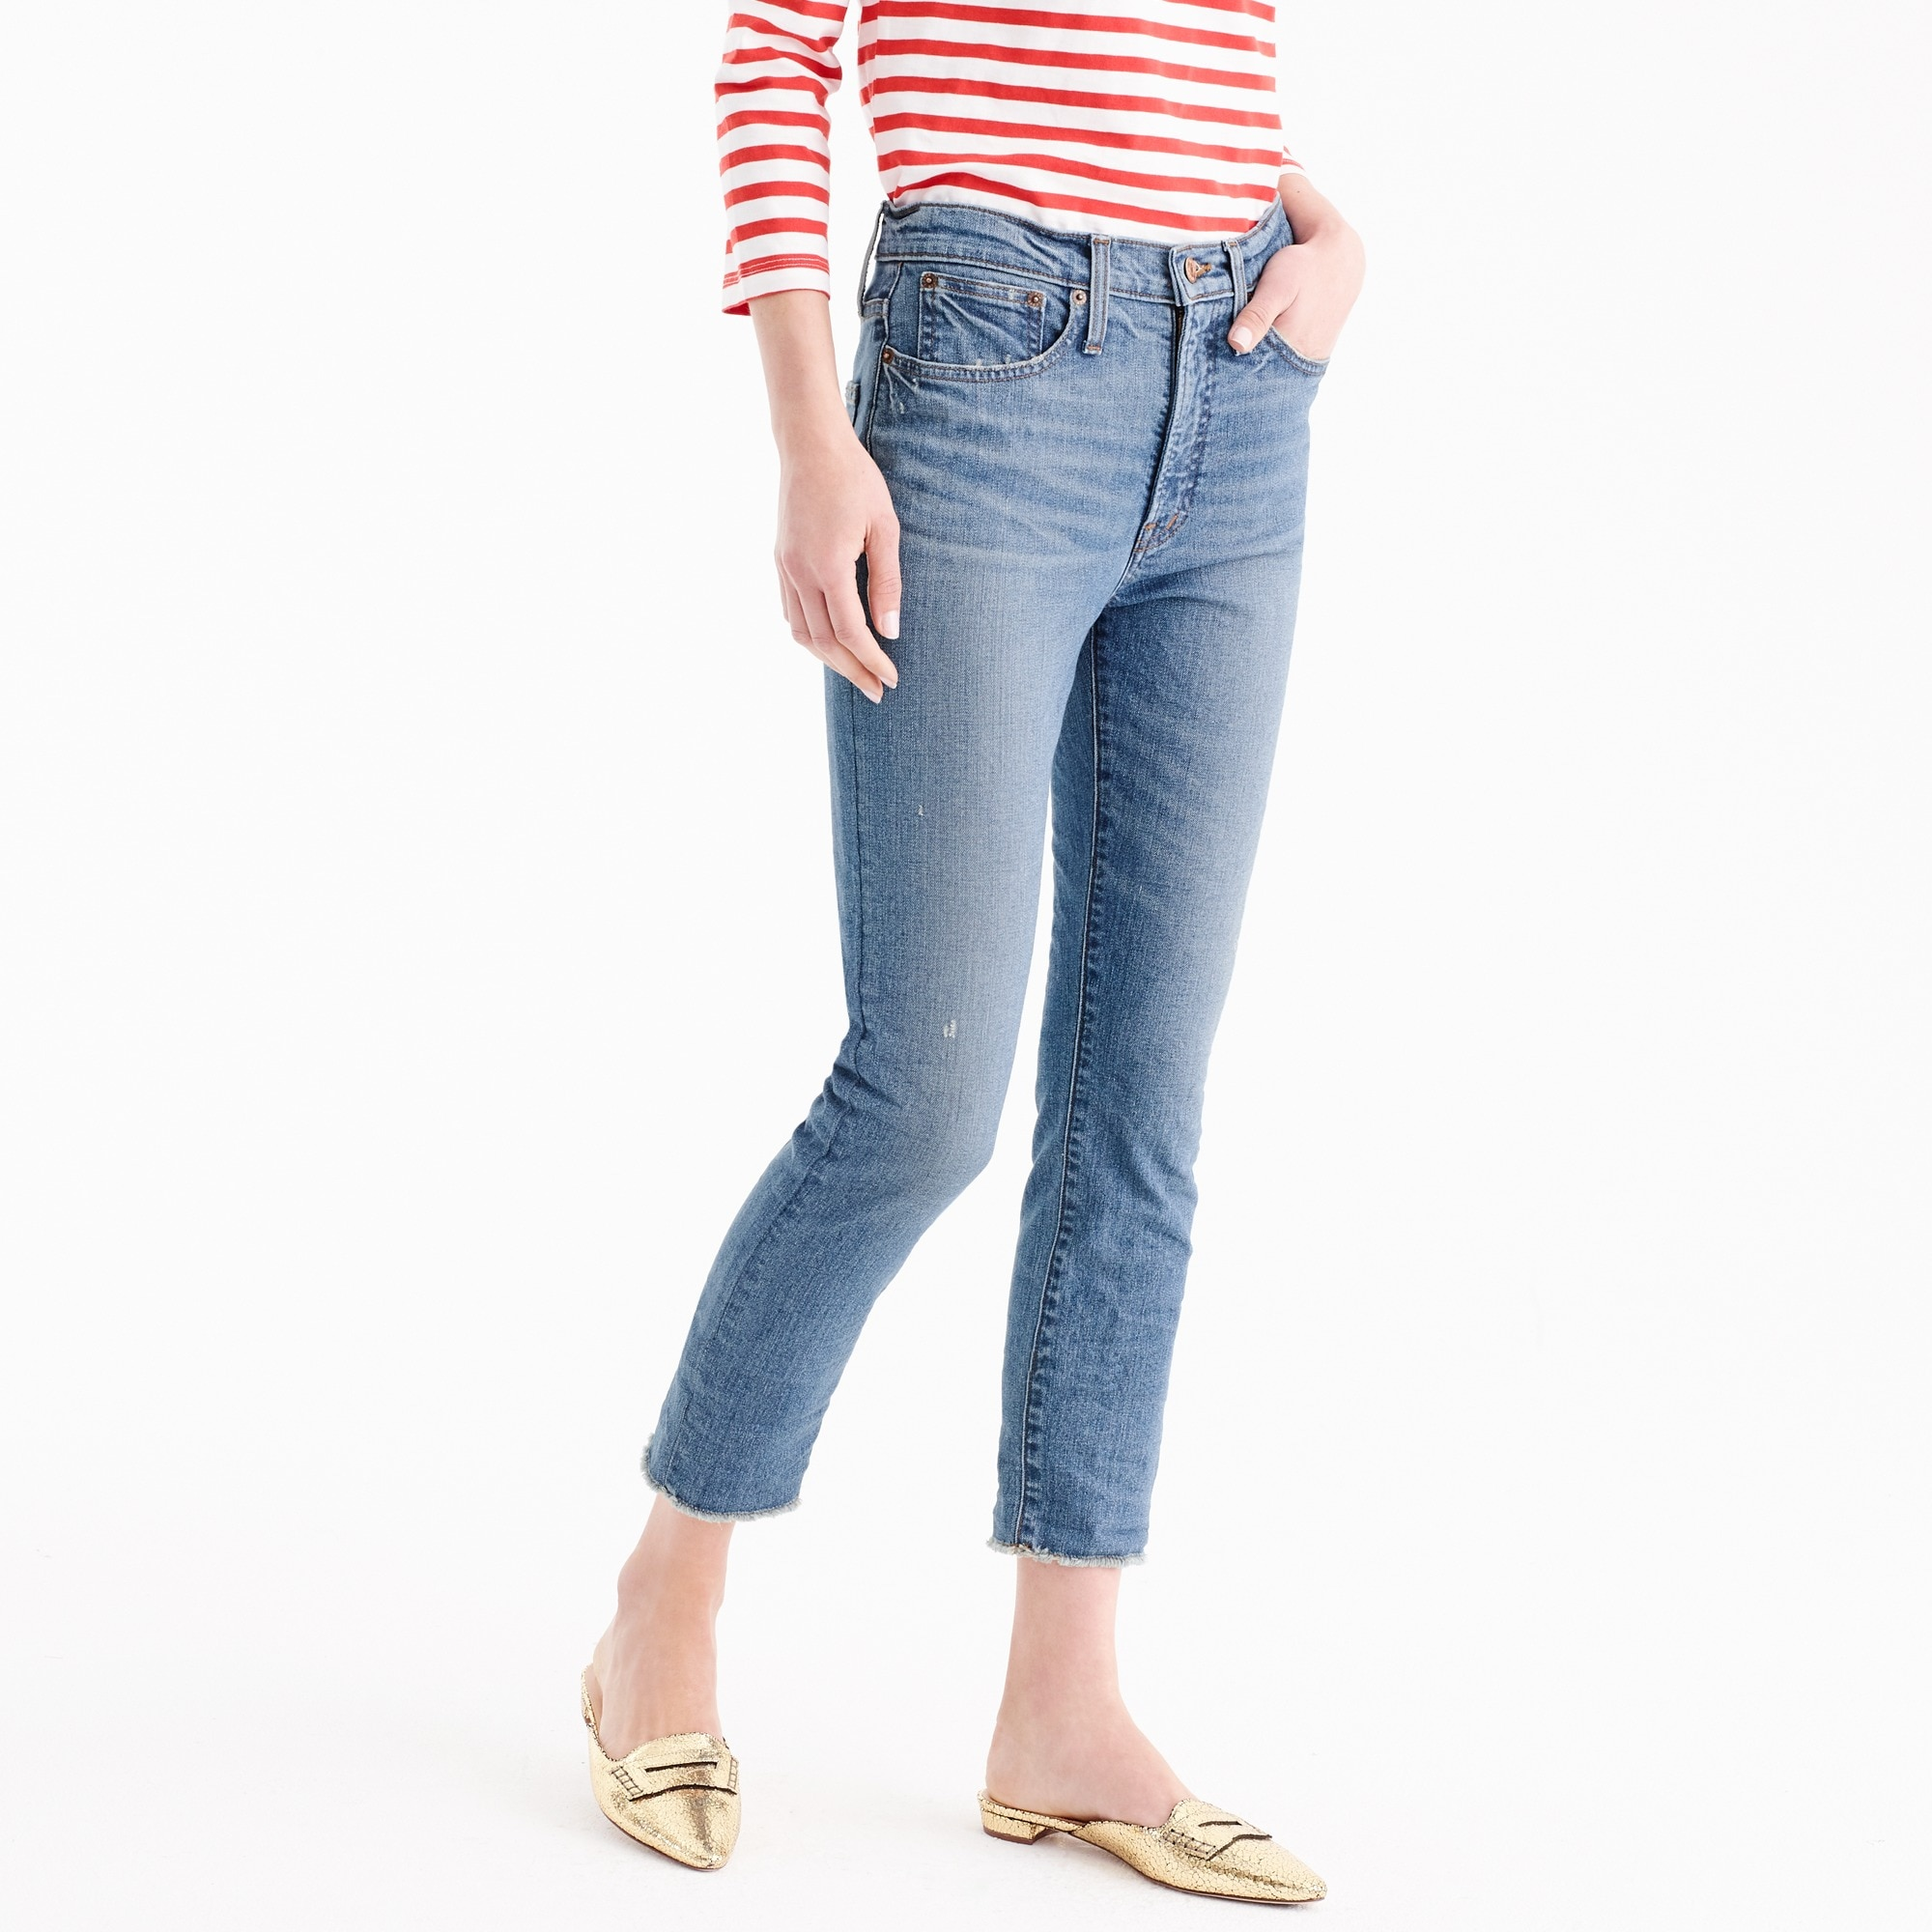 tall vintage crop jean in landers wash : women denim